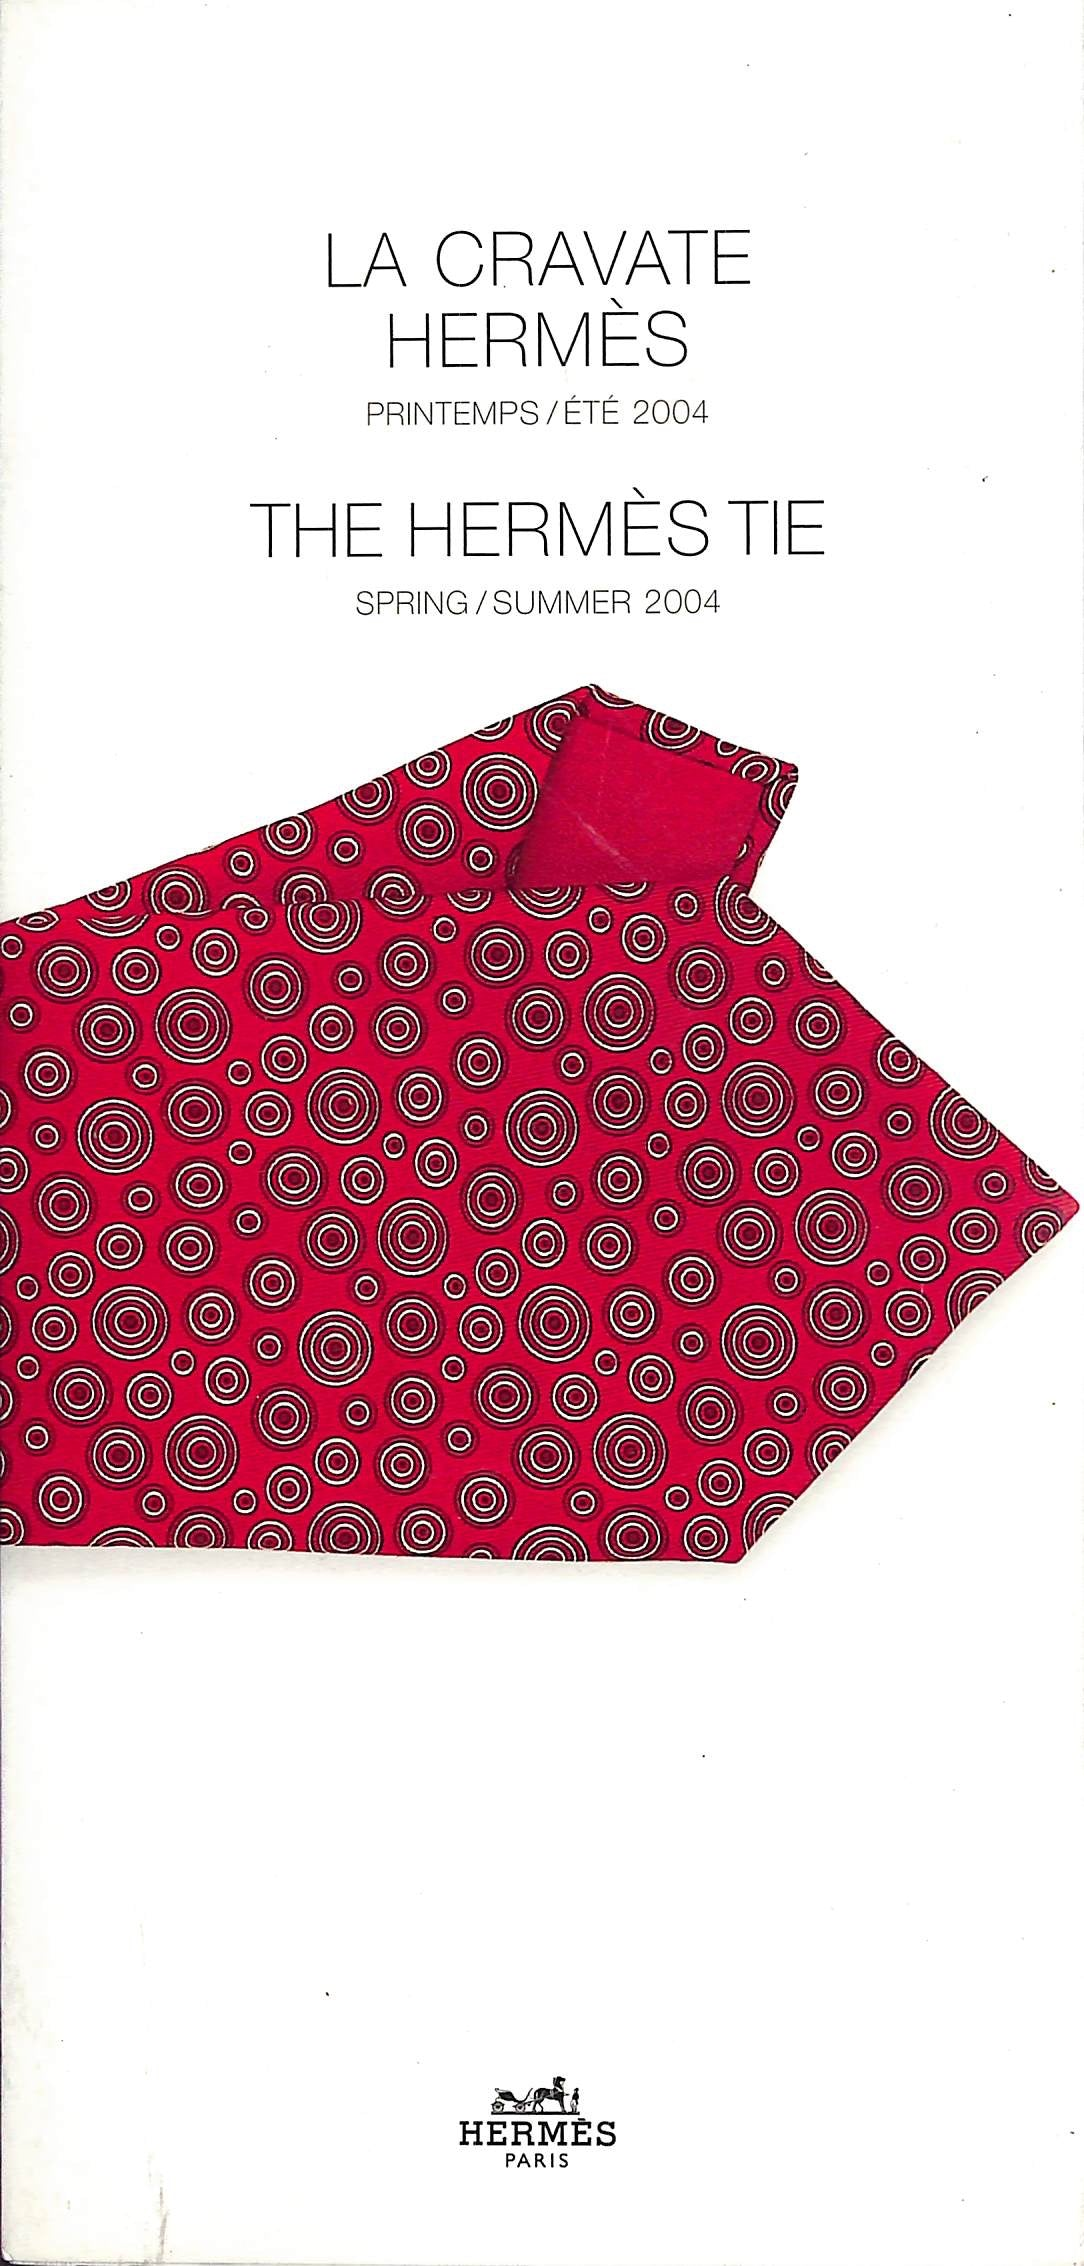 The Hermes Tie Spring/Summer 2004